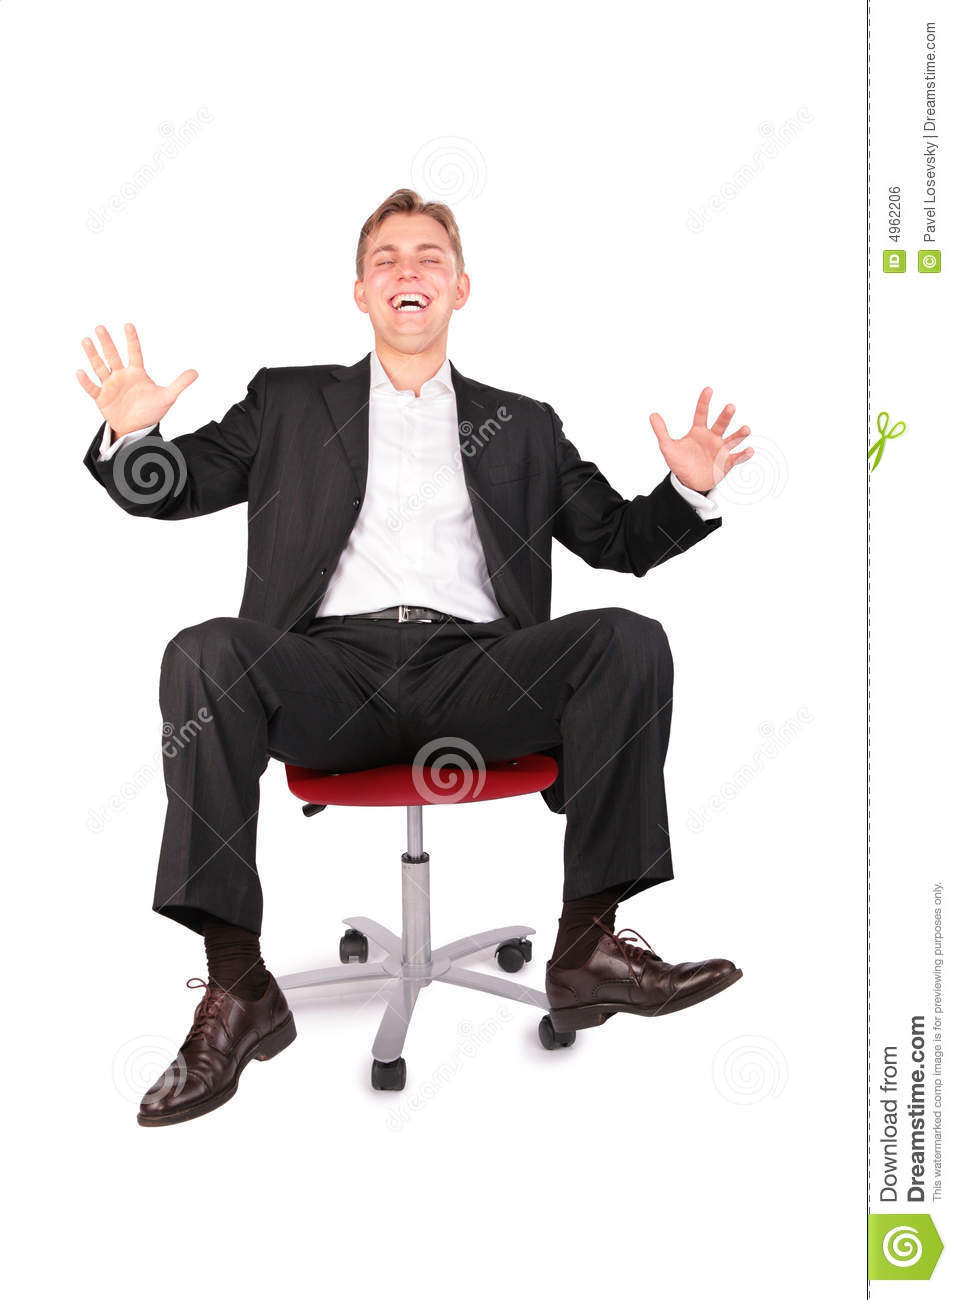 Laughing Young Person On Office Chair Royalty Free Stock